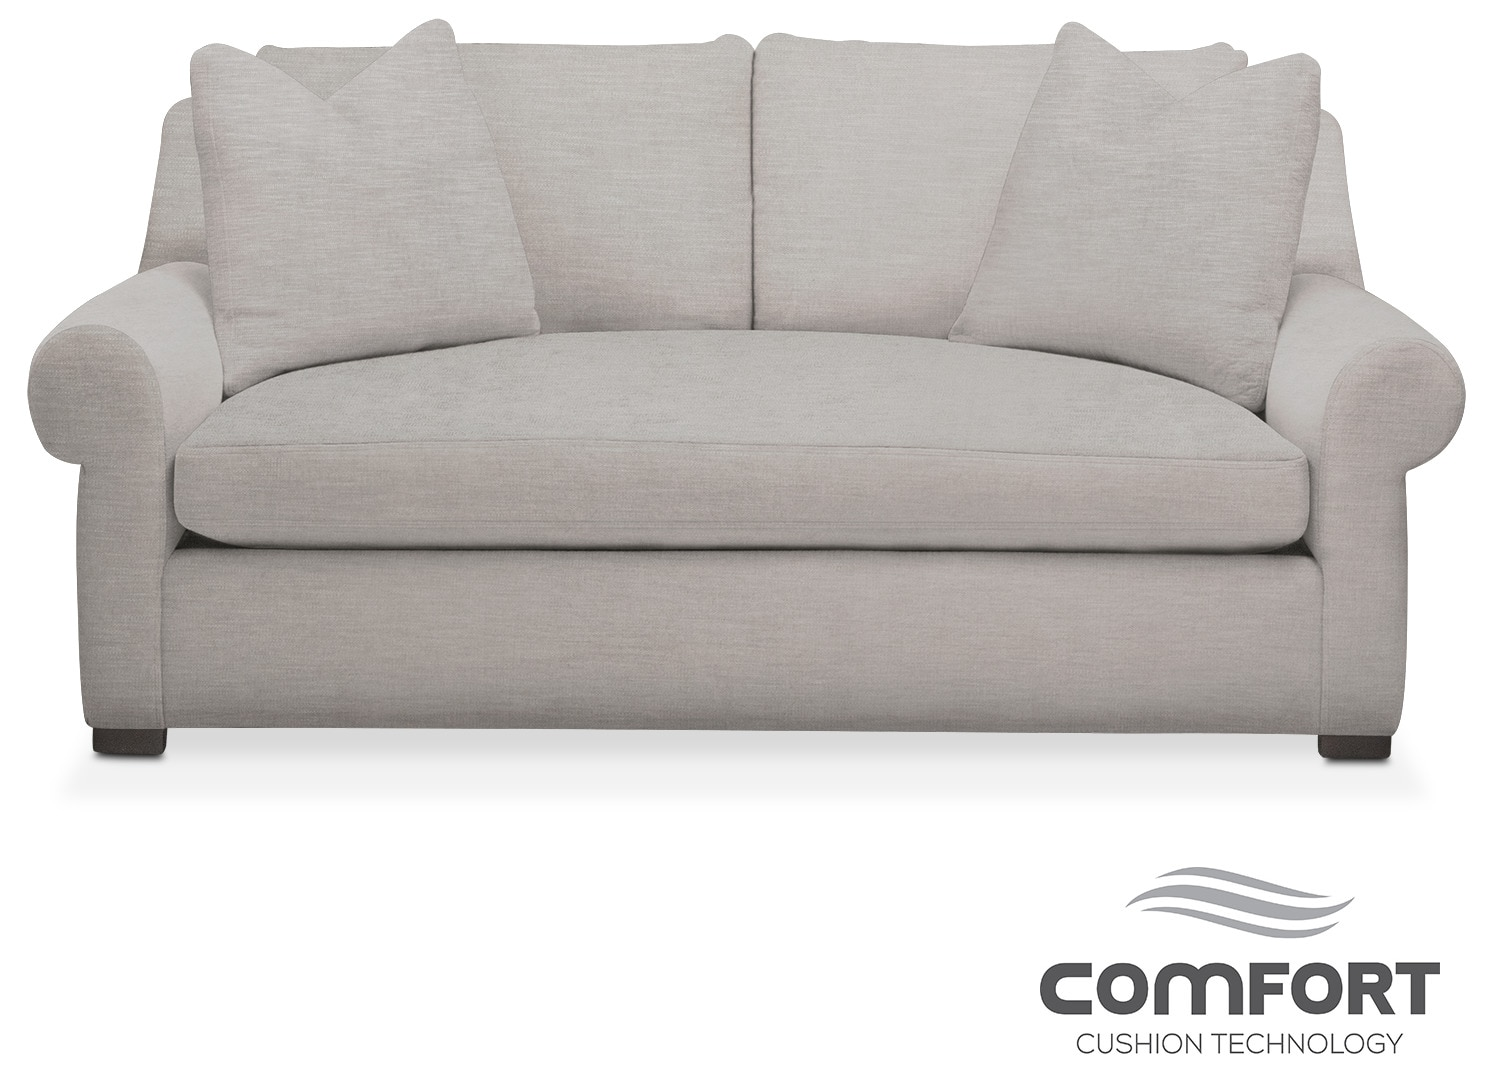 Living Room Furniture - Asher Comfort Apartment Sofa